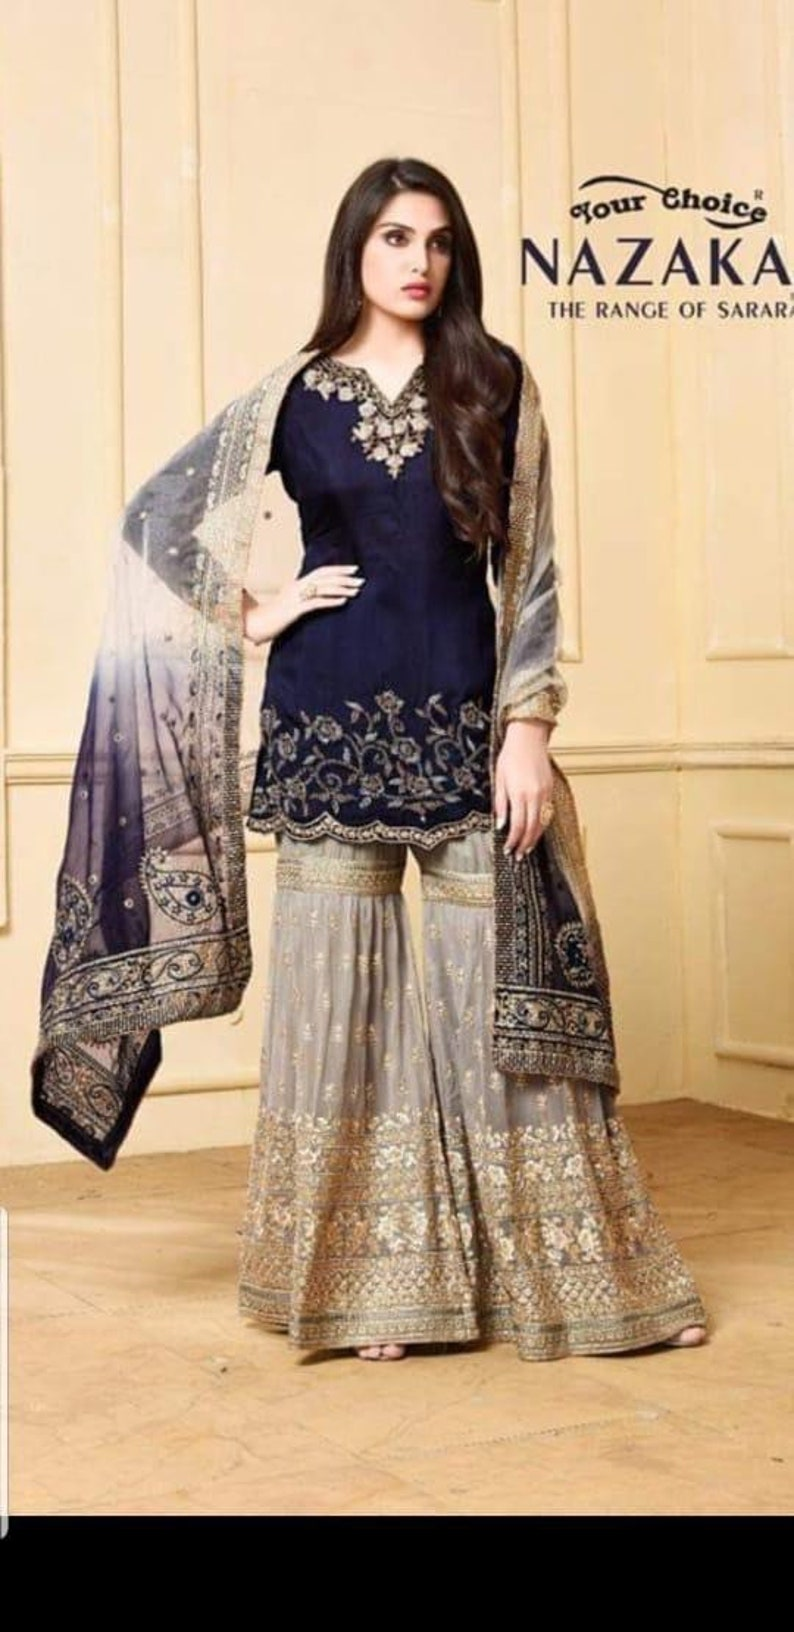 Nazaka Blue Chiffon Embroidered suit with gharara suit with net duppata  size, medium maria b sana safinaz gharara suits